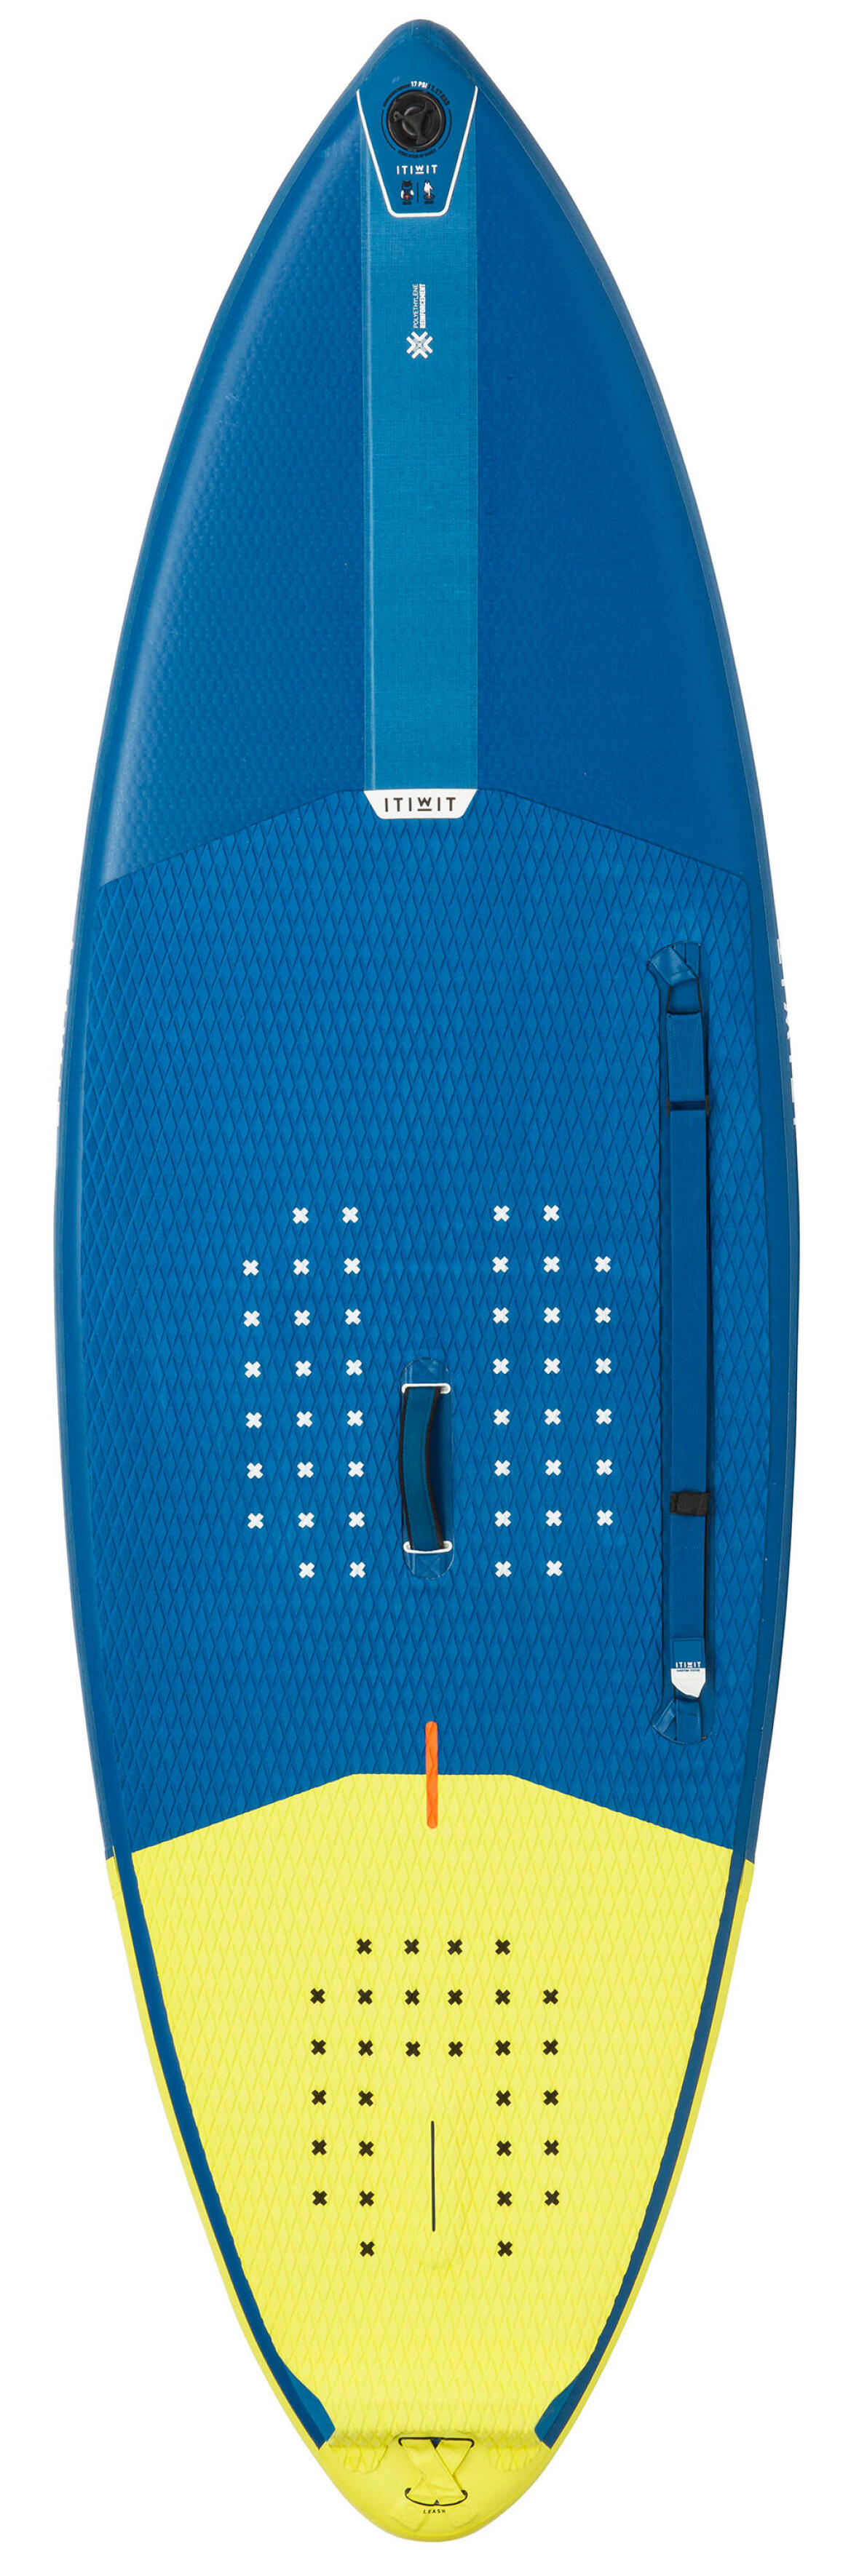 itiwit-inflatable-surf-sup-w500-9-blue